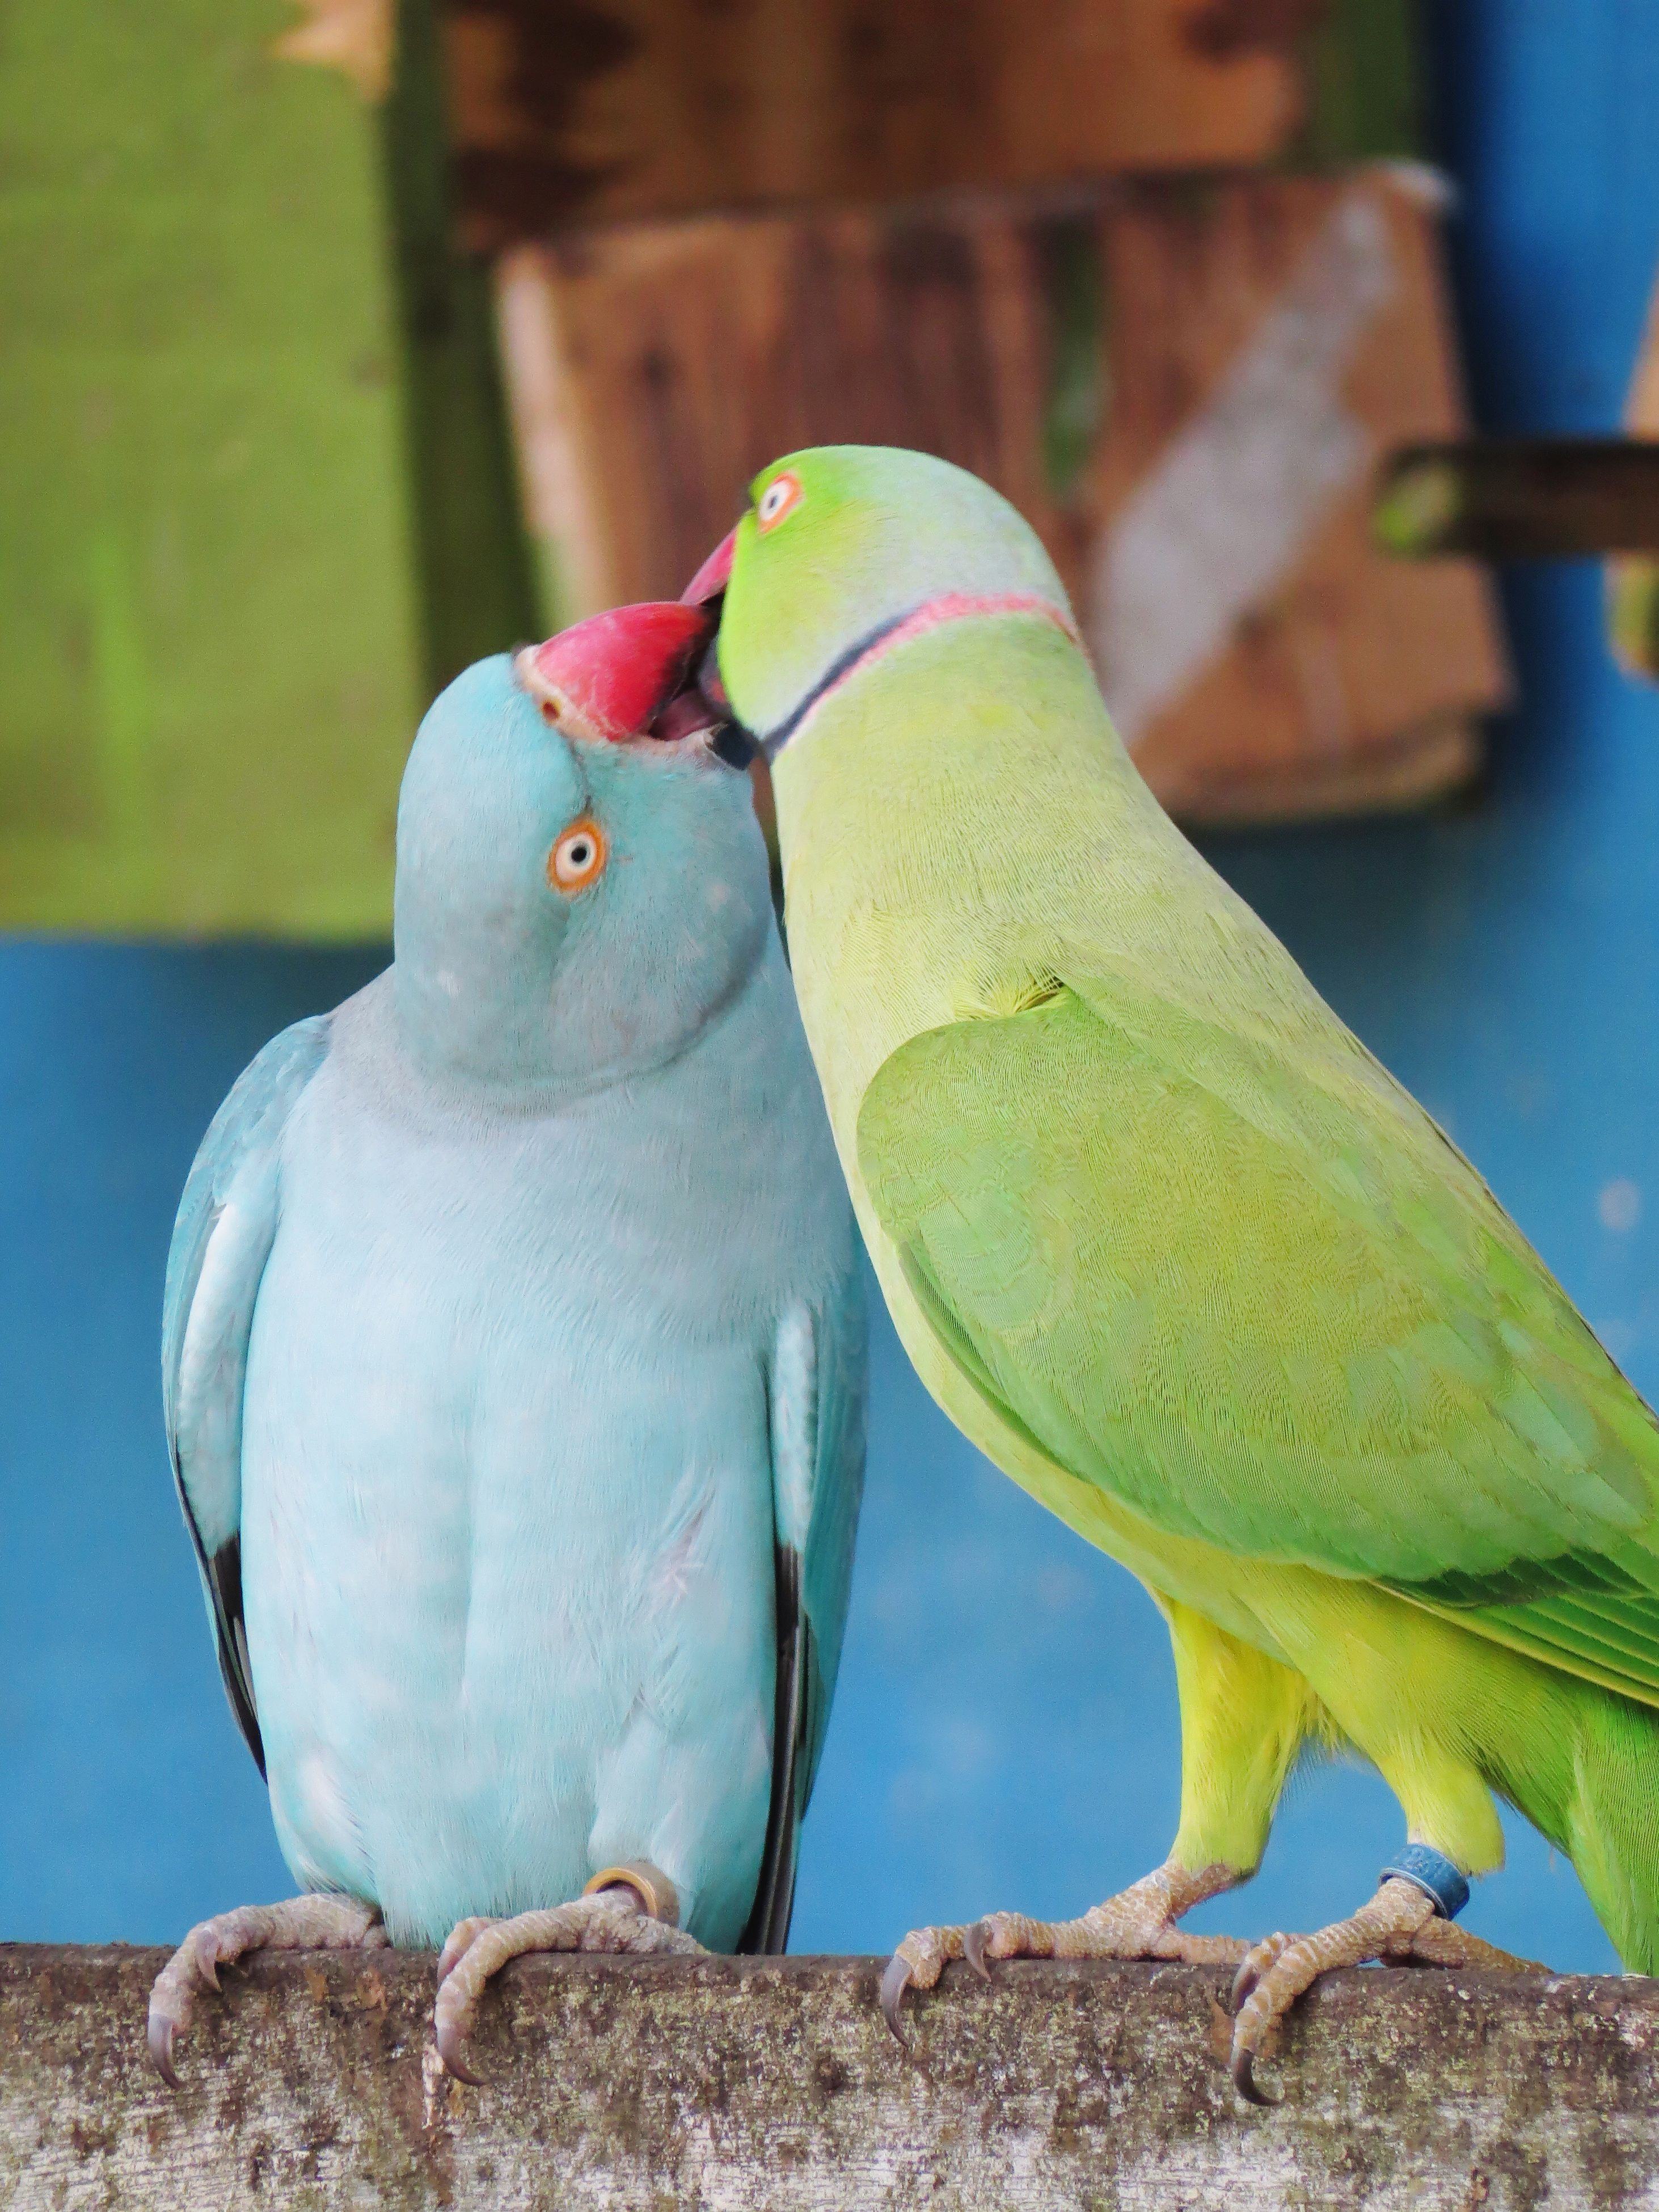 bird, animals in the wild, animal themes, perching, animal wildlife, day, nature, focus on foreground, no people, green color, outdoors, togetherness, parrot, close-up